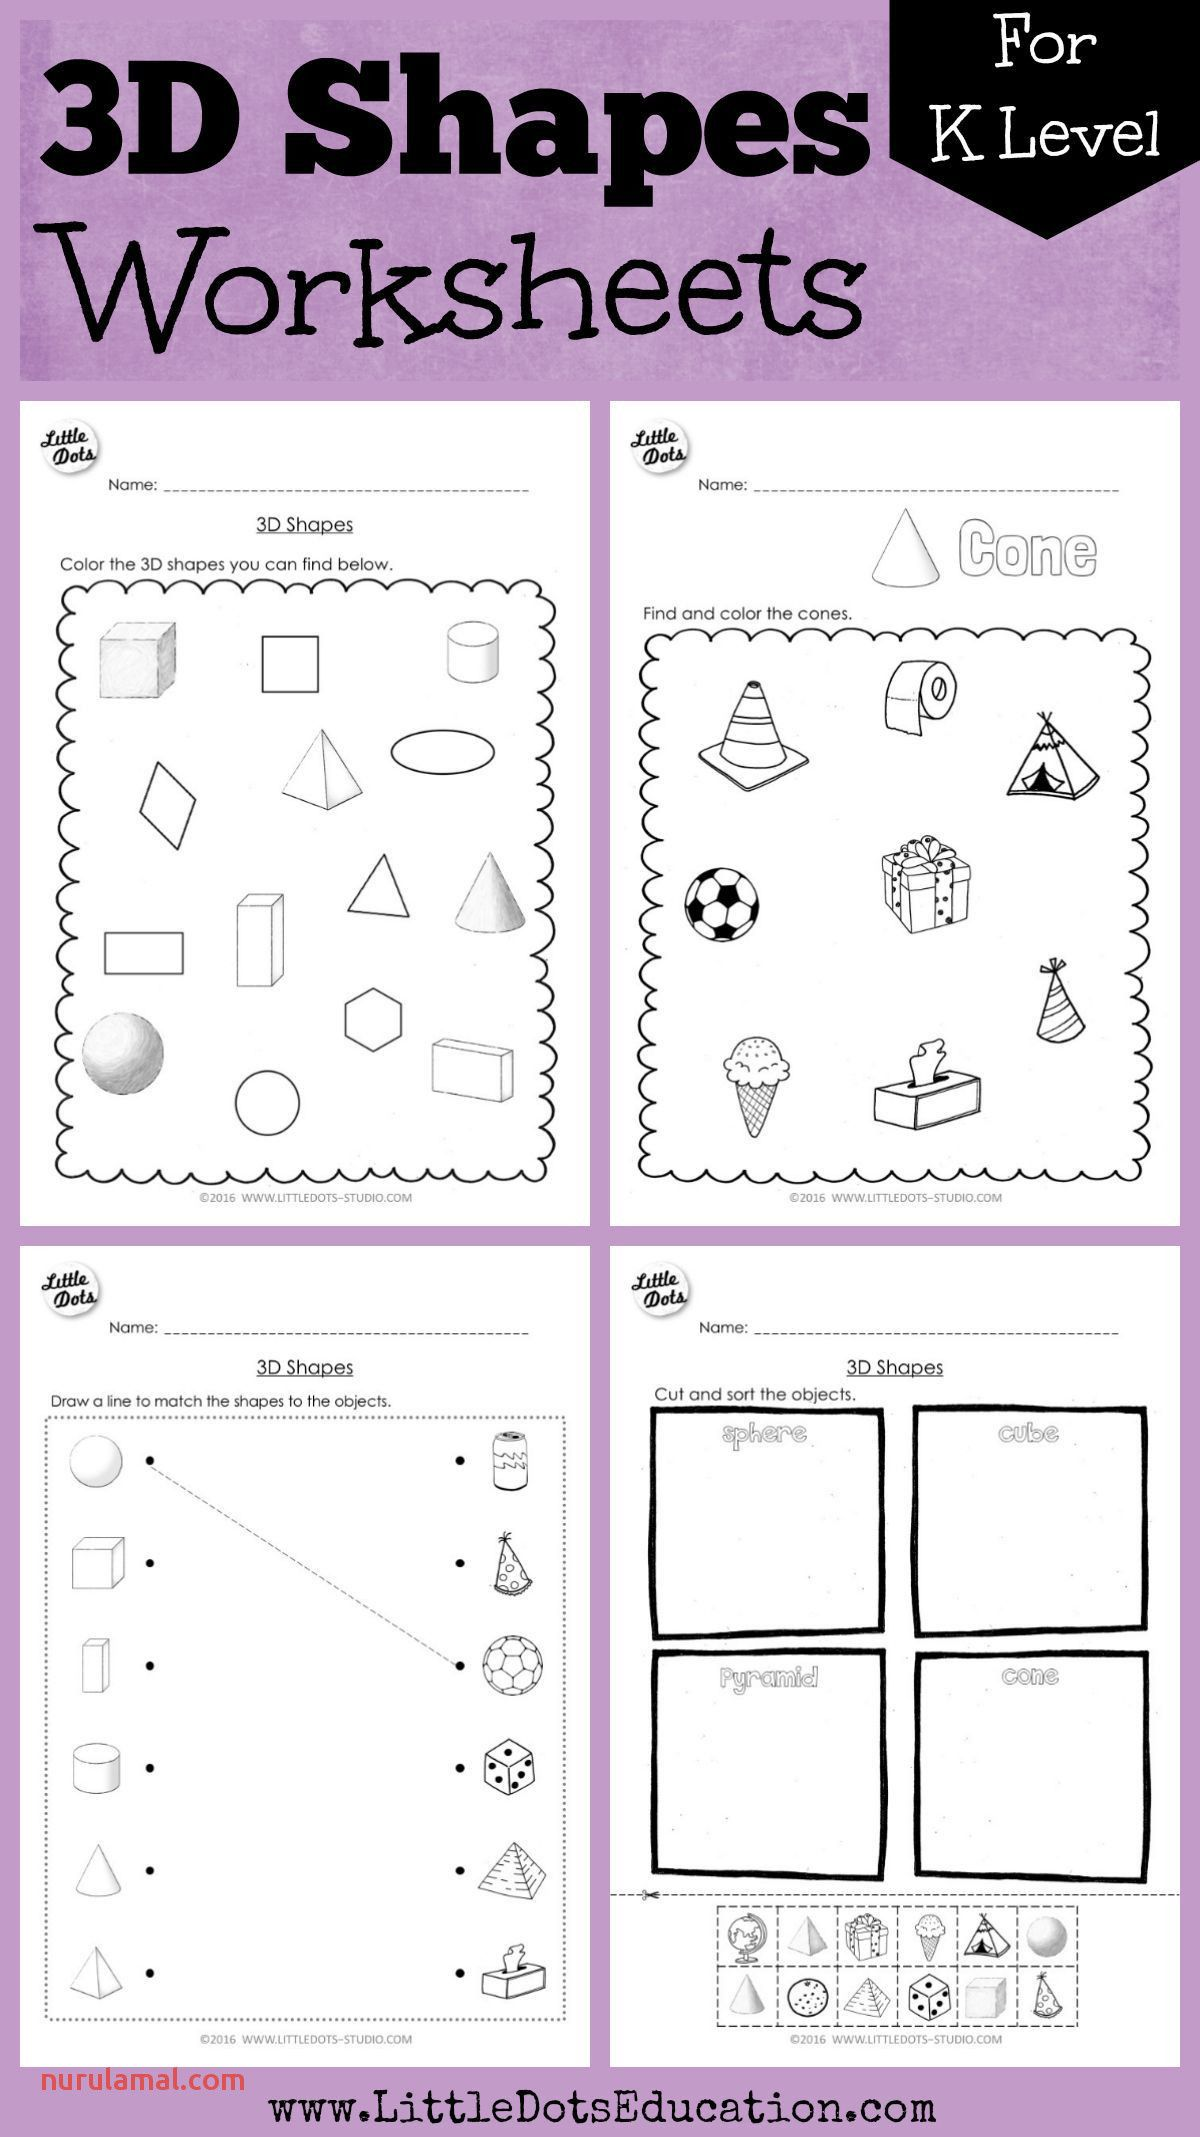 Shapes Worksheets For Kids Draw A Line In